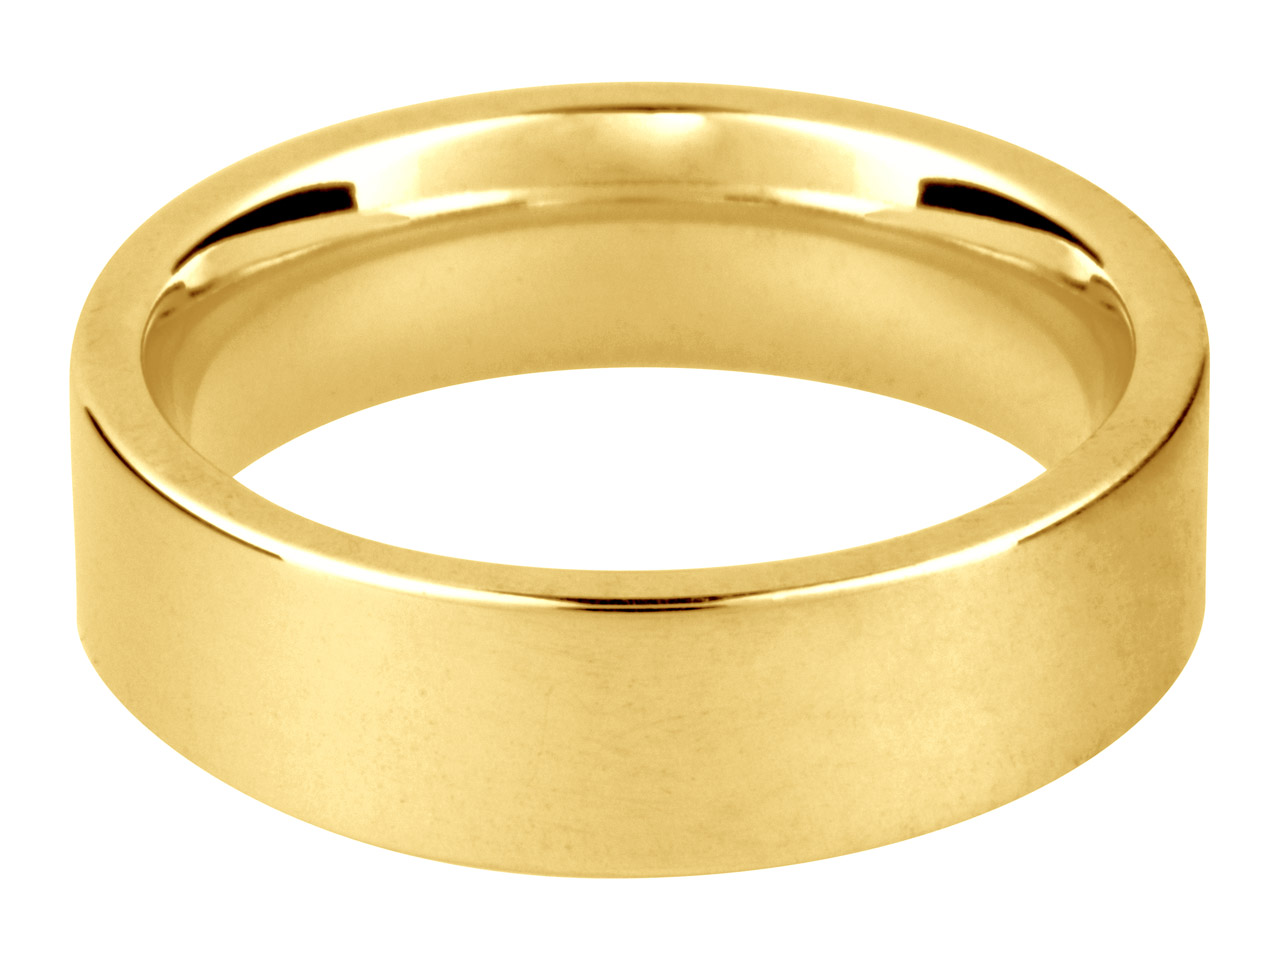 9ct Yellow Easy Fit Wedding Ring   4.0mm J 4.3gms Medium Weight       Hallmarked Wall Thickness 1.84mm